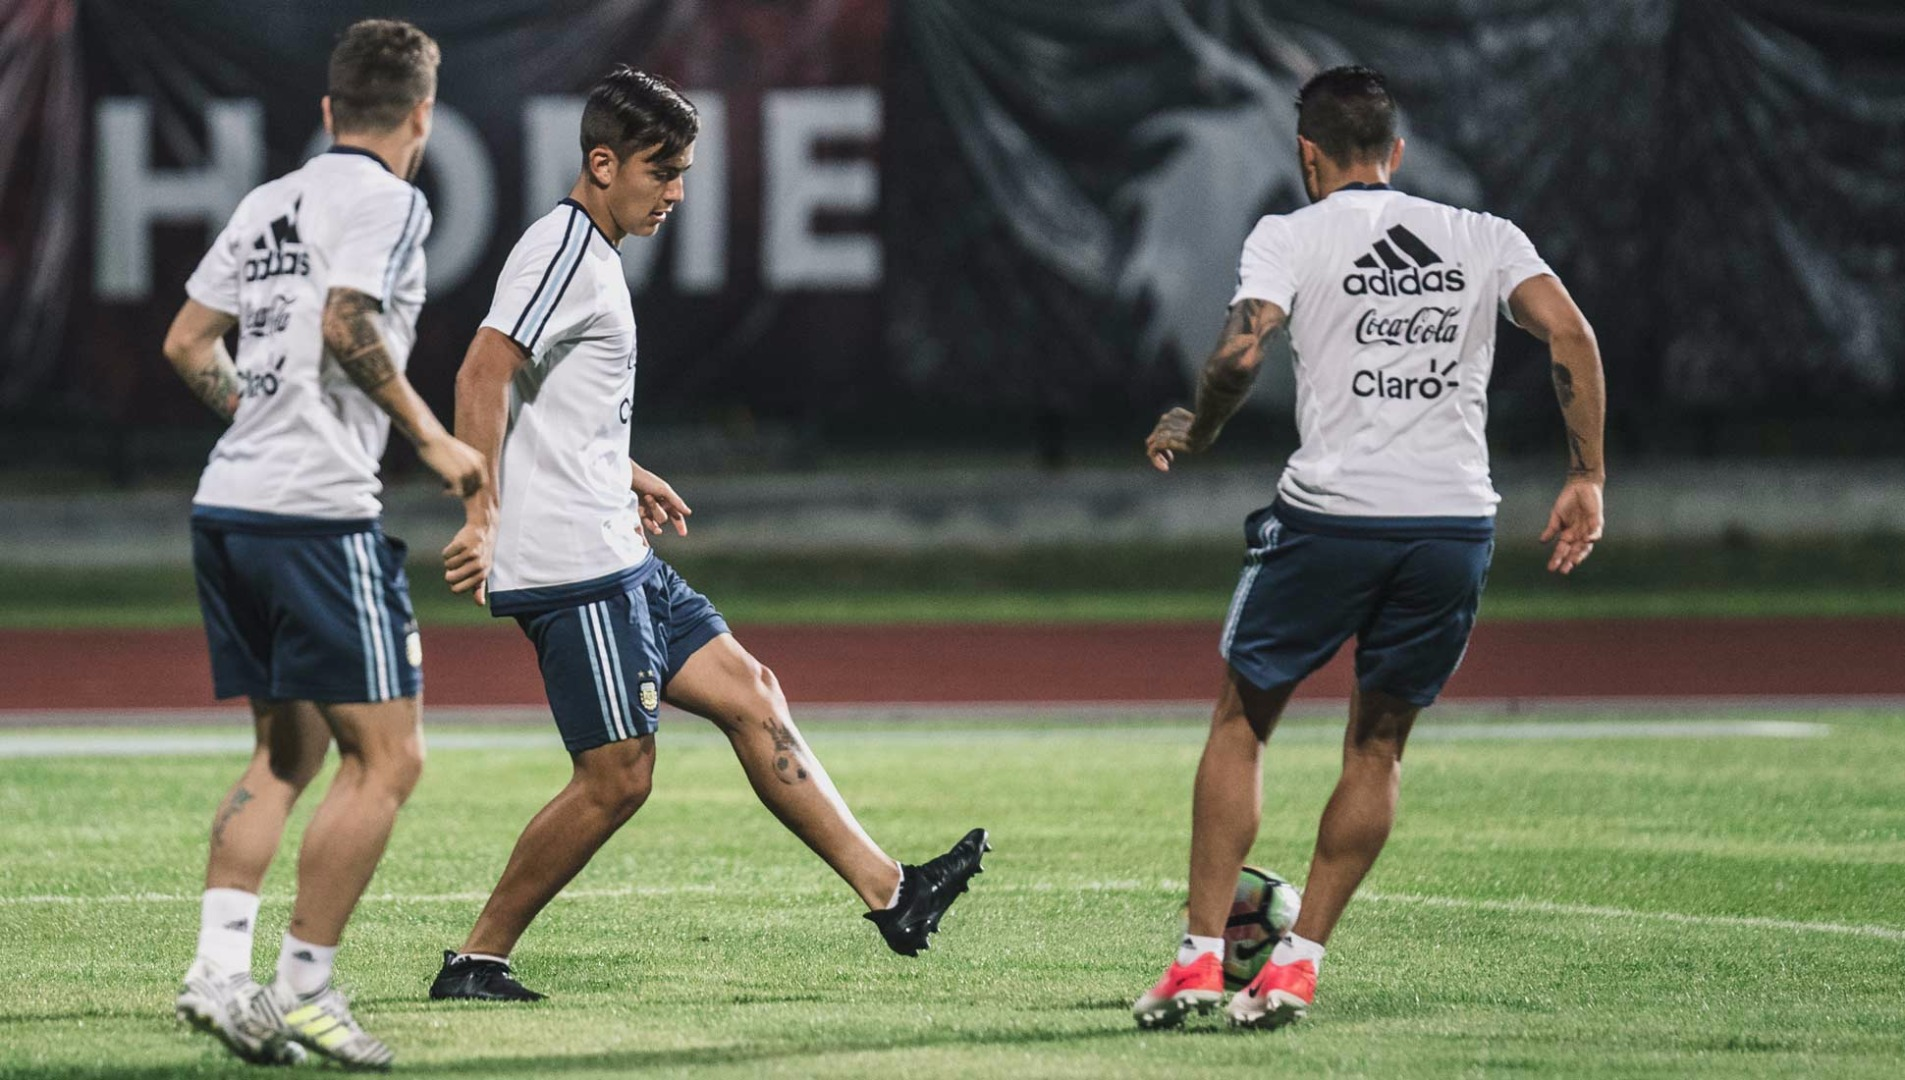 e2d675d15dcf Paulo Dybala Close to Joining adidas - SoccerBible